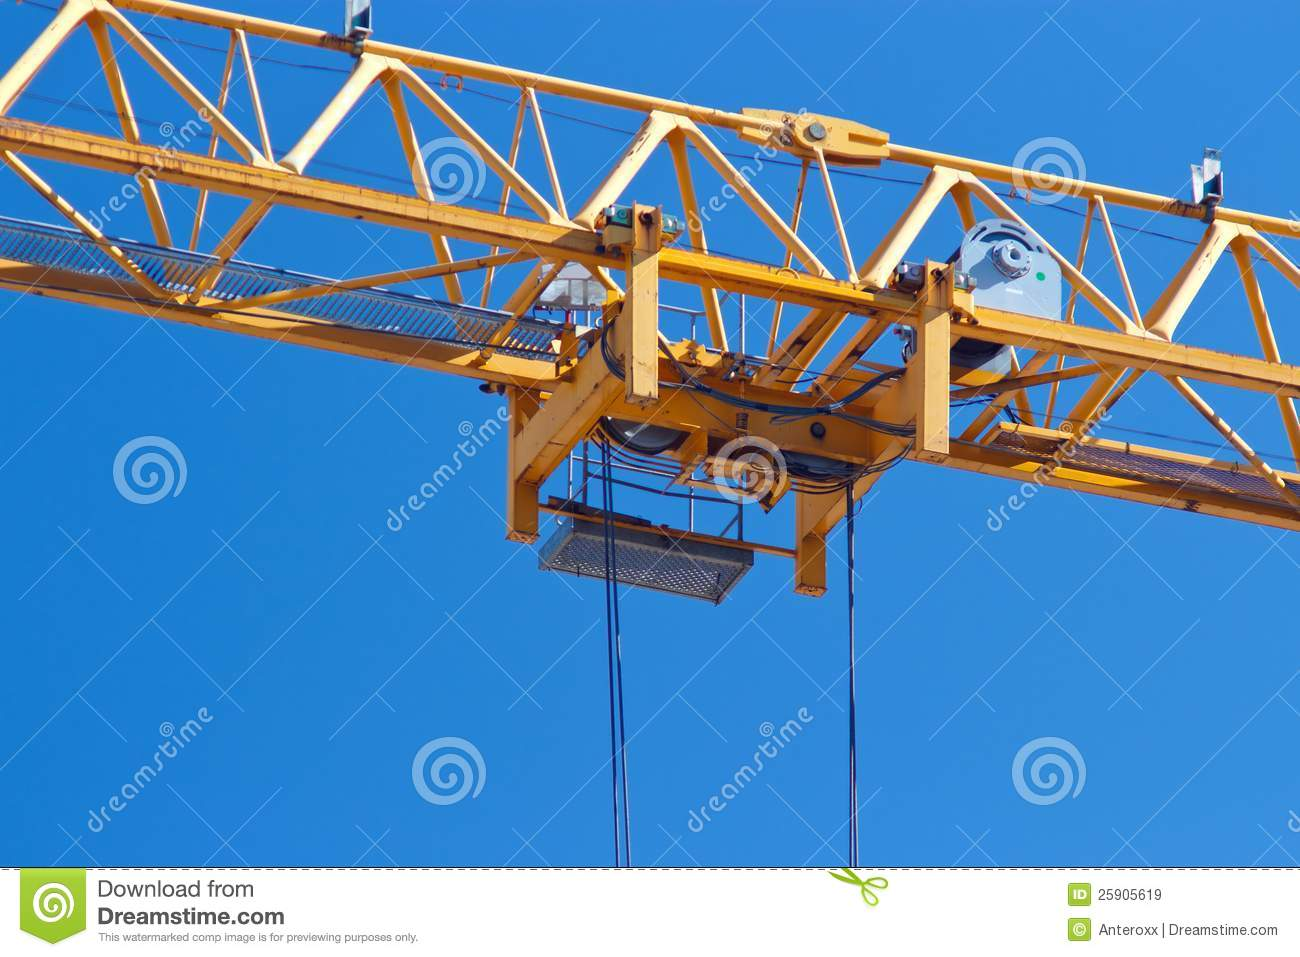 Crane trolley stock image  Image of blue, industrial - 25905619